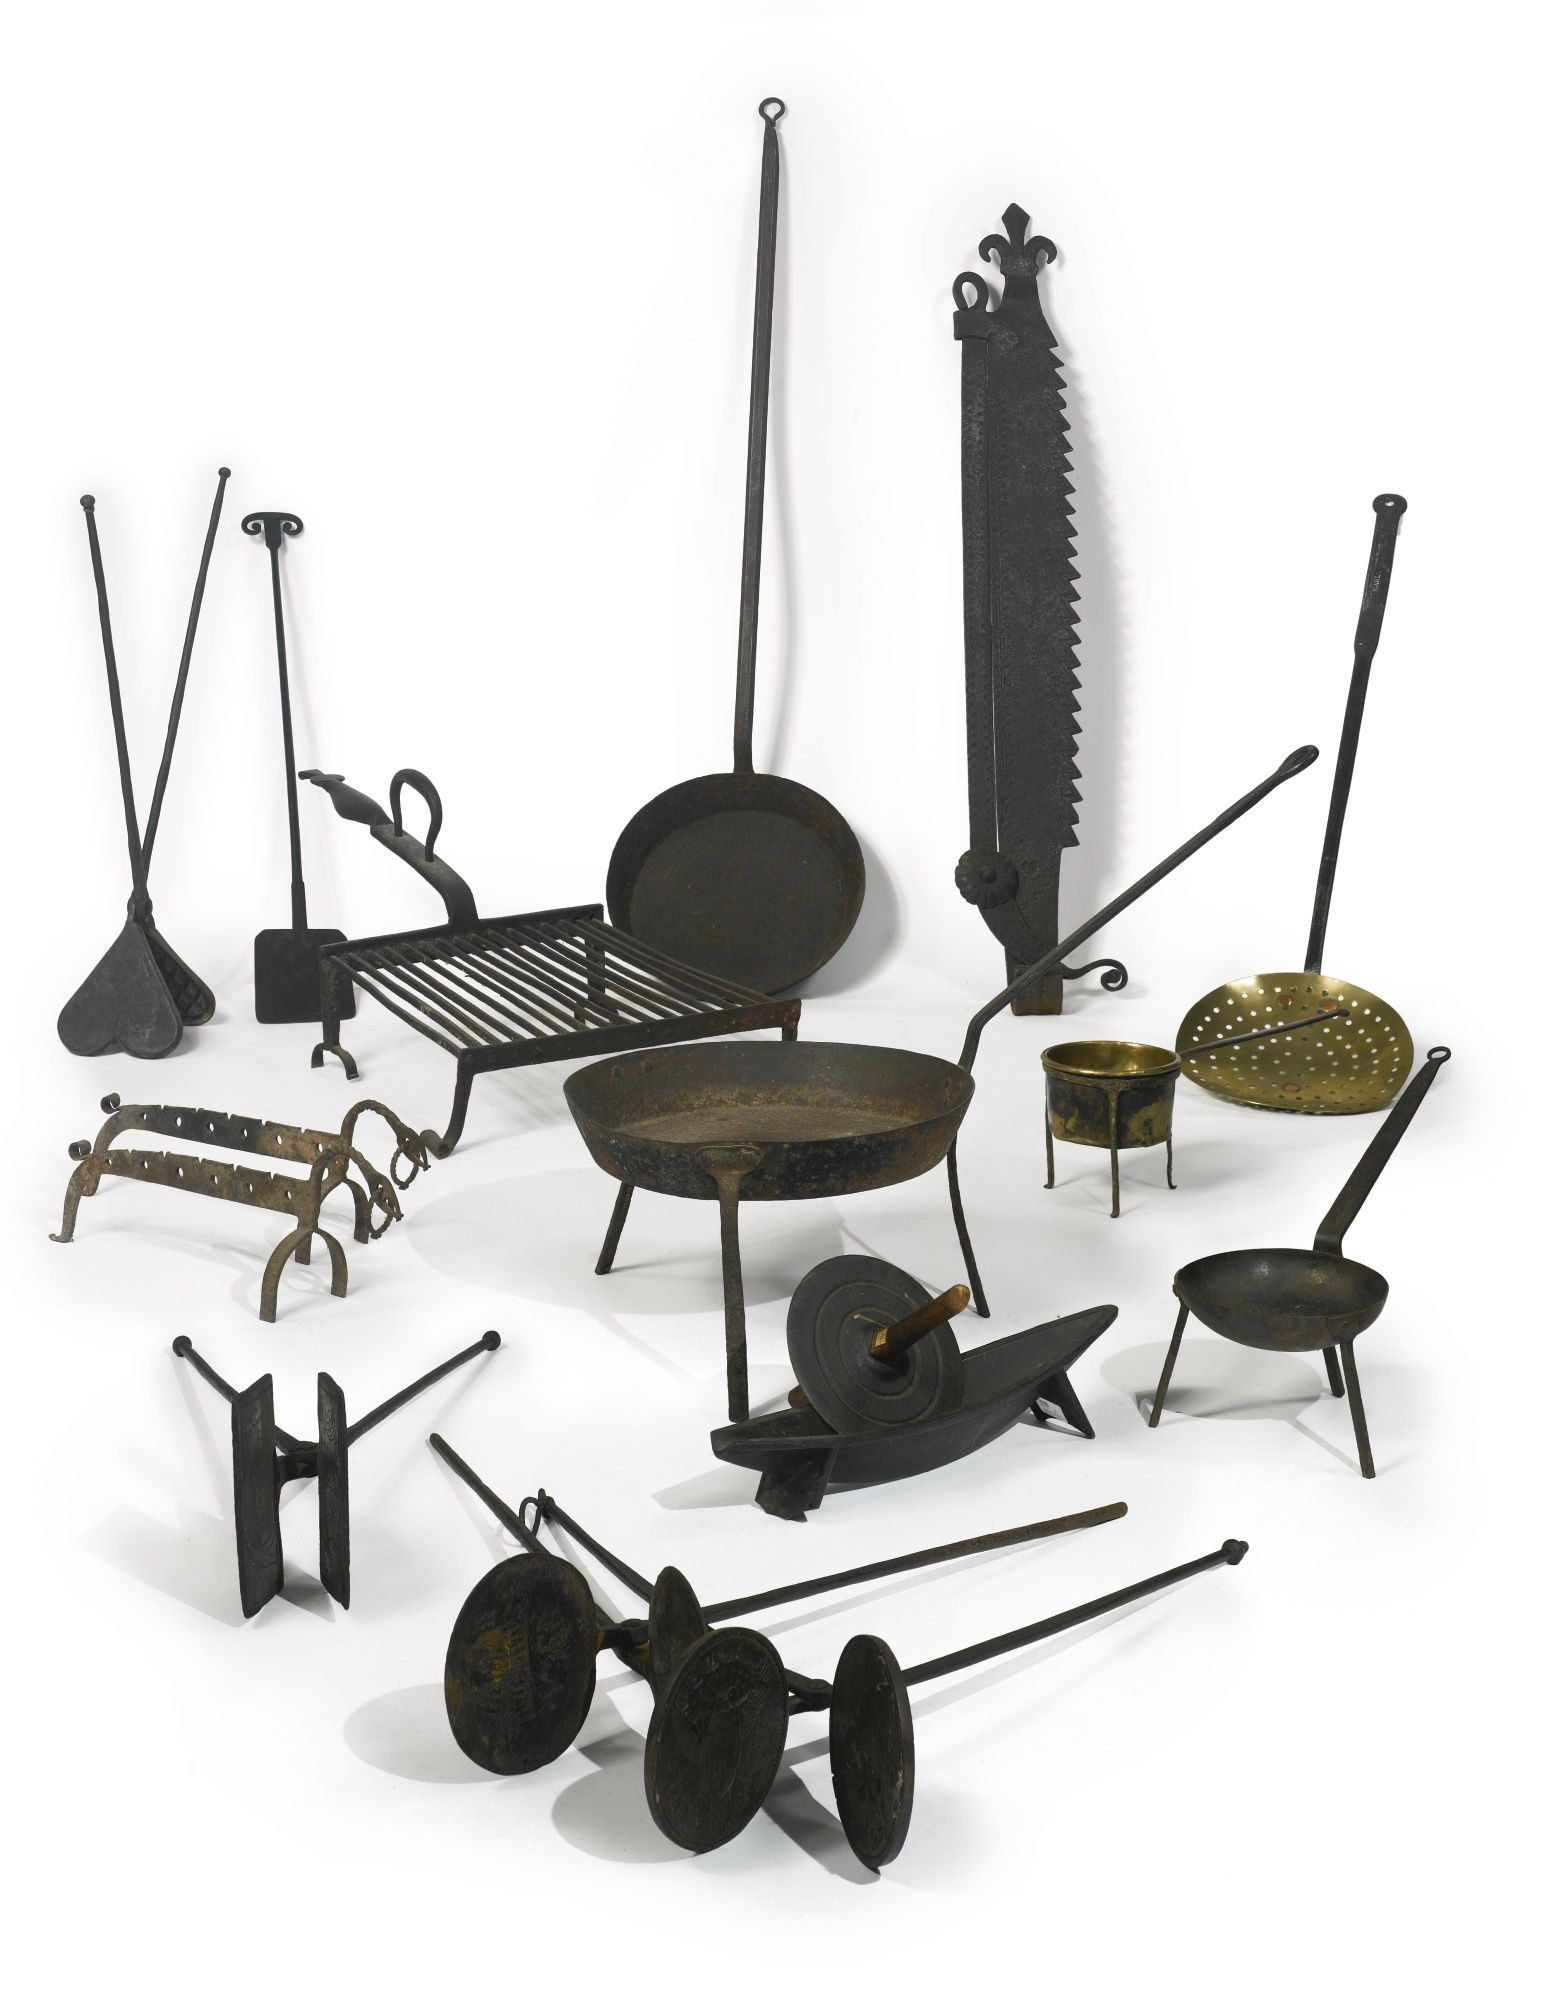 an assorted group of wrought and cast iron cooking implements